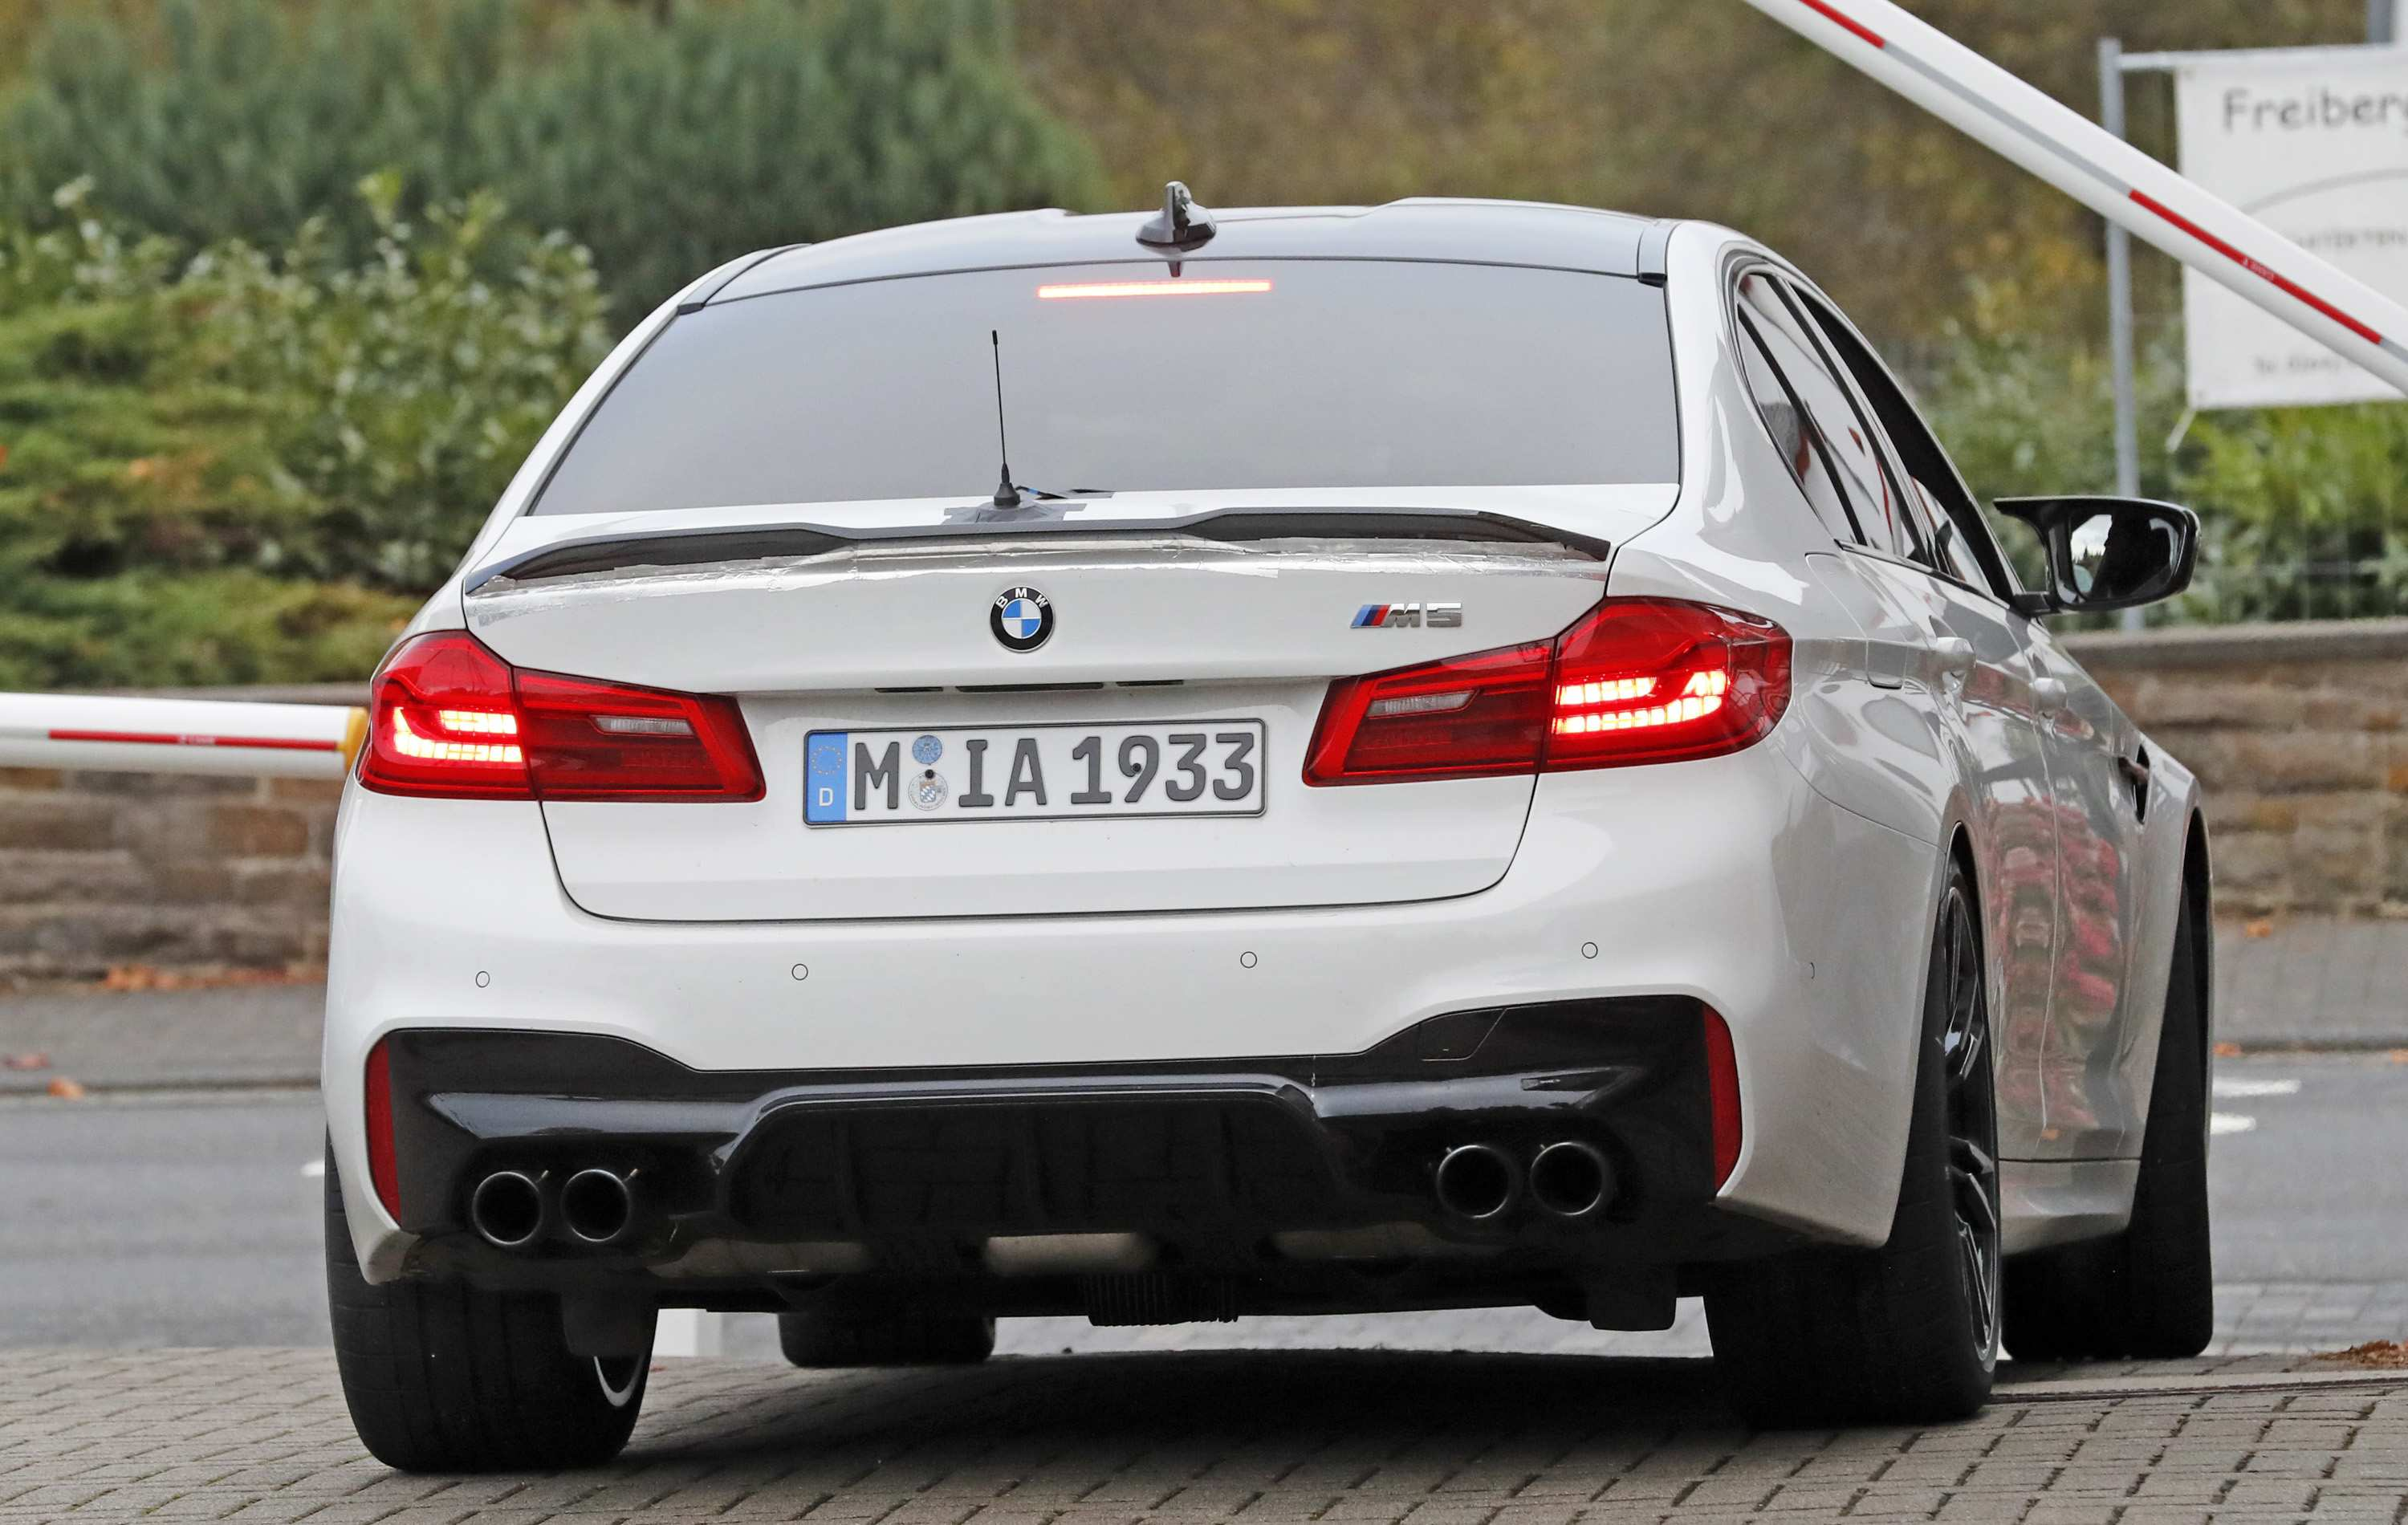 79 Great Bmw M5 2020 Pricing for Bmw M5 2020